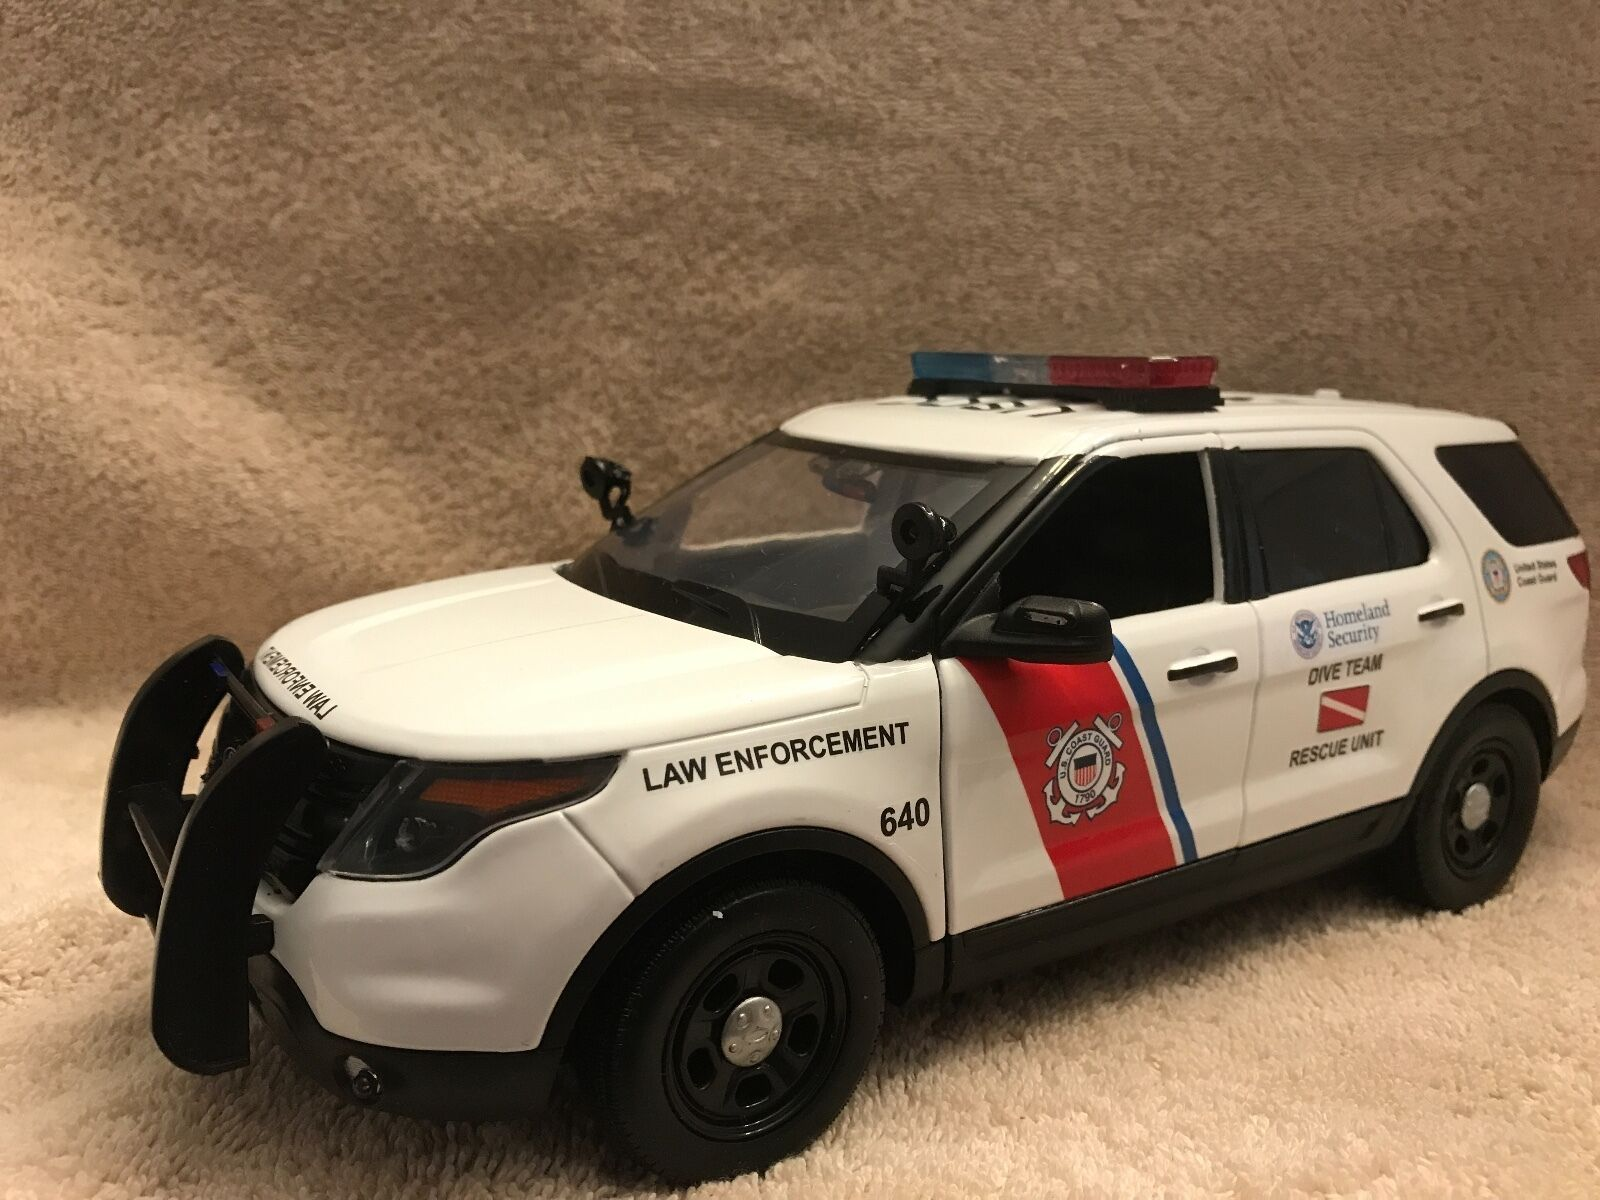 1/18 SCALE US COAST GUARD FORD SUV DIECAST MODEL WITH WORKING LIGHTS AND SIREN